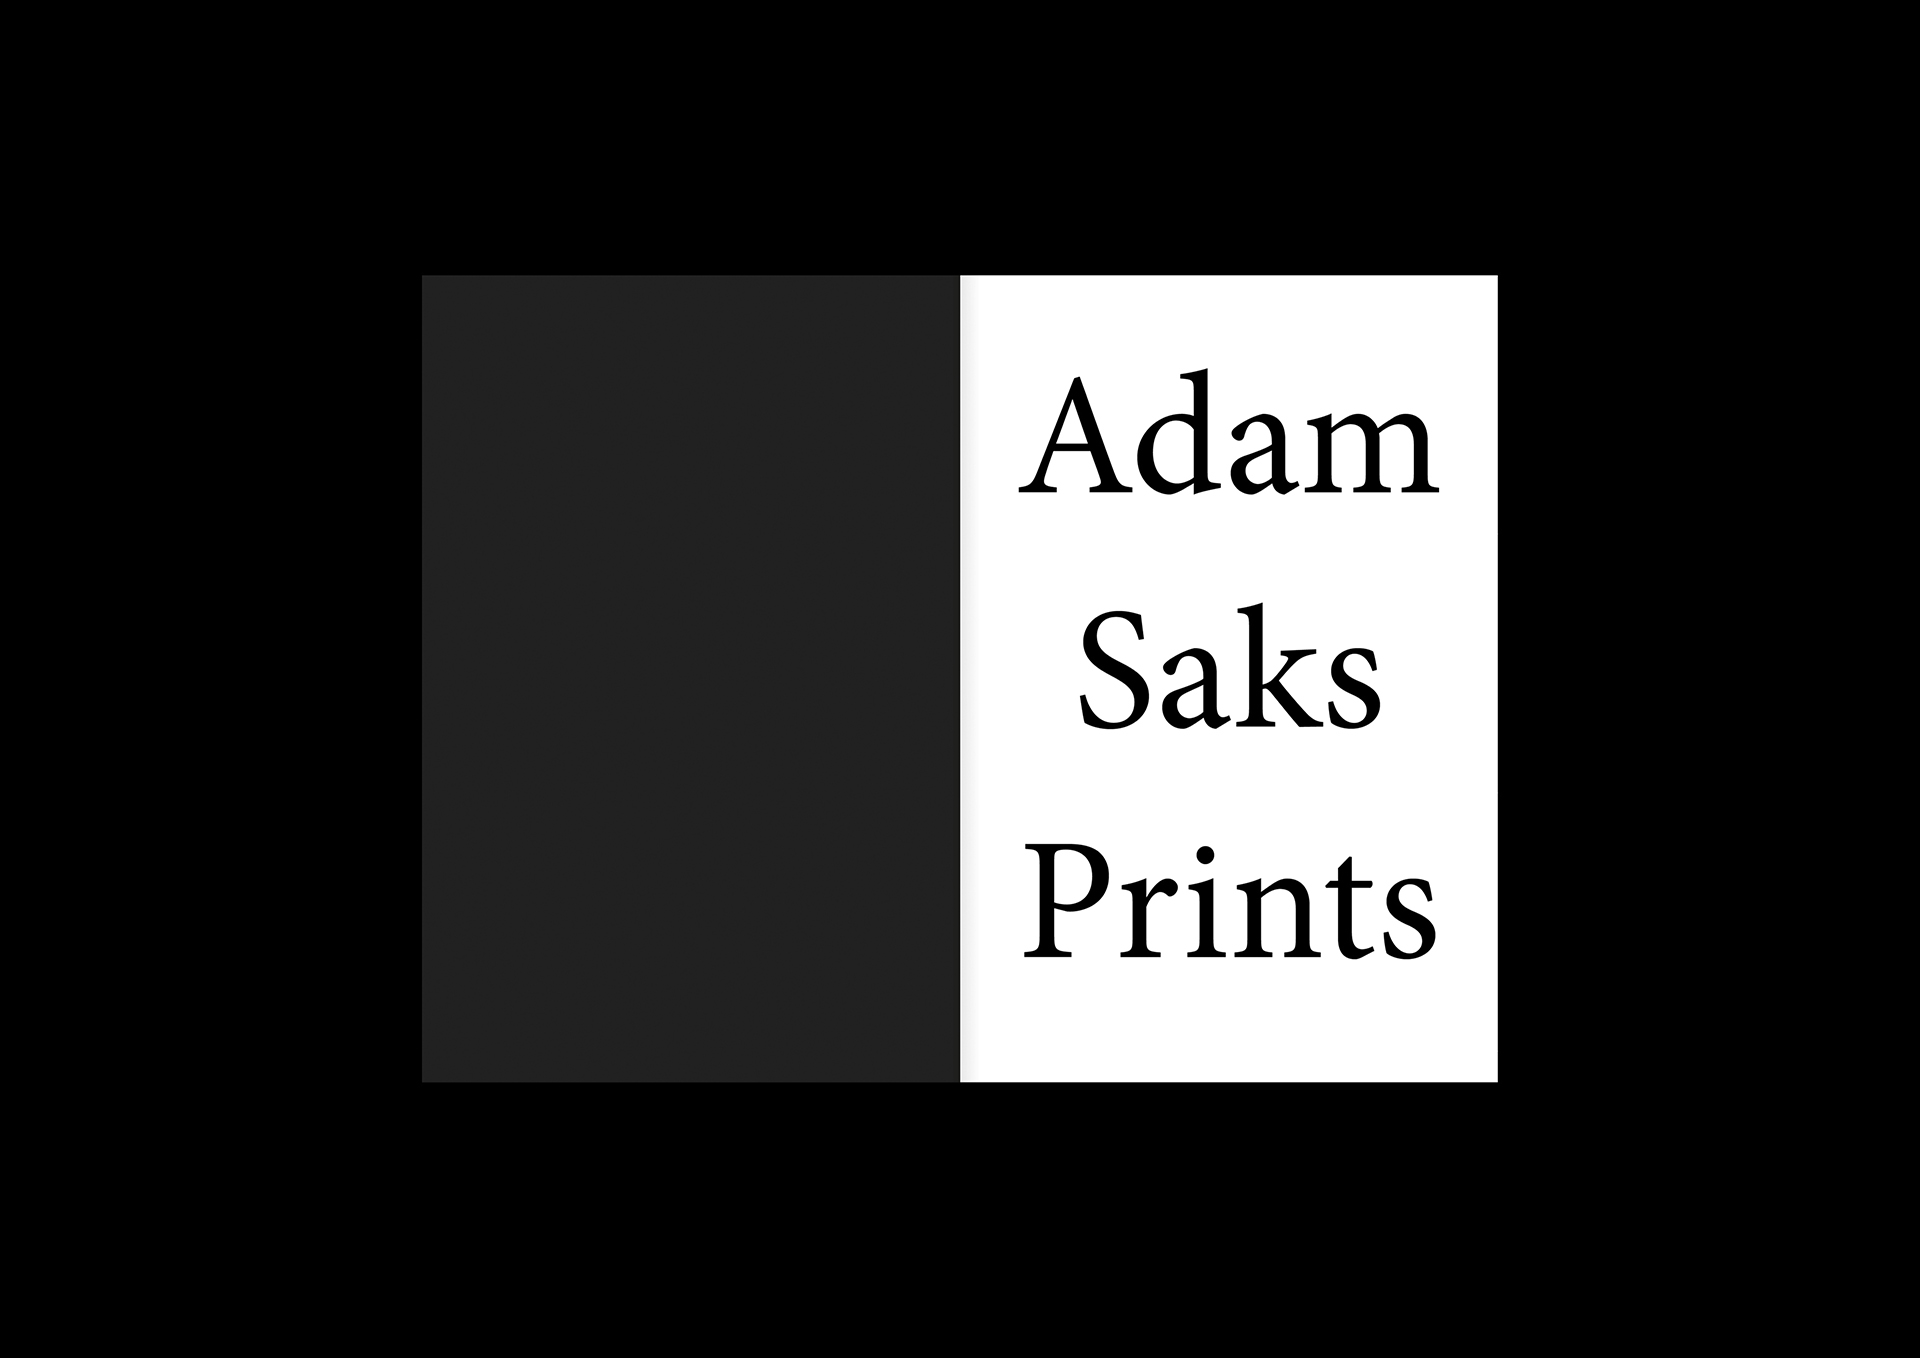 SMS_Adam_Saks_Prints_2